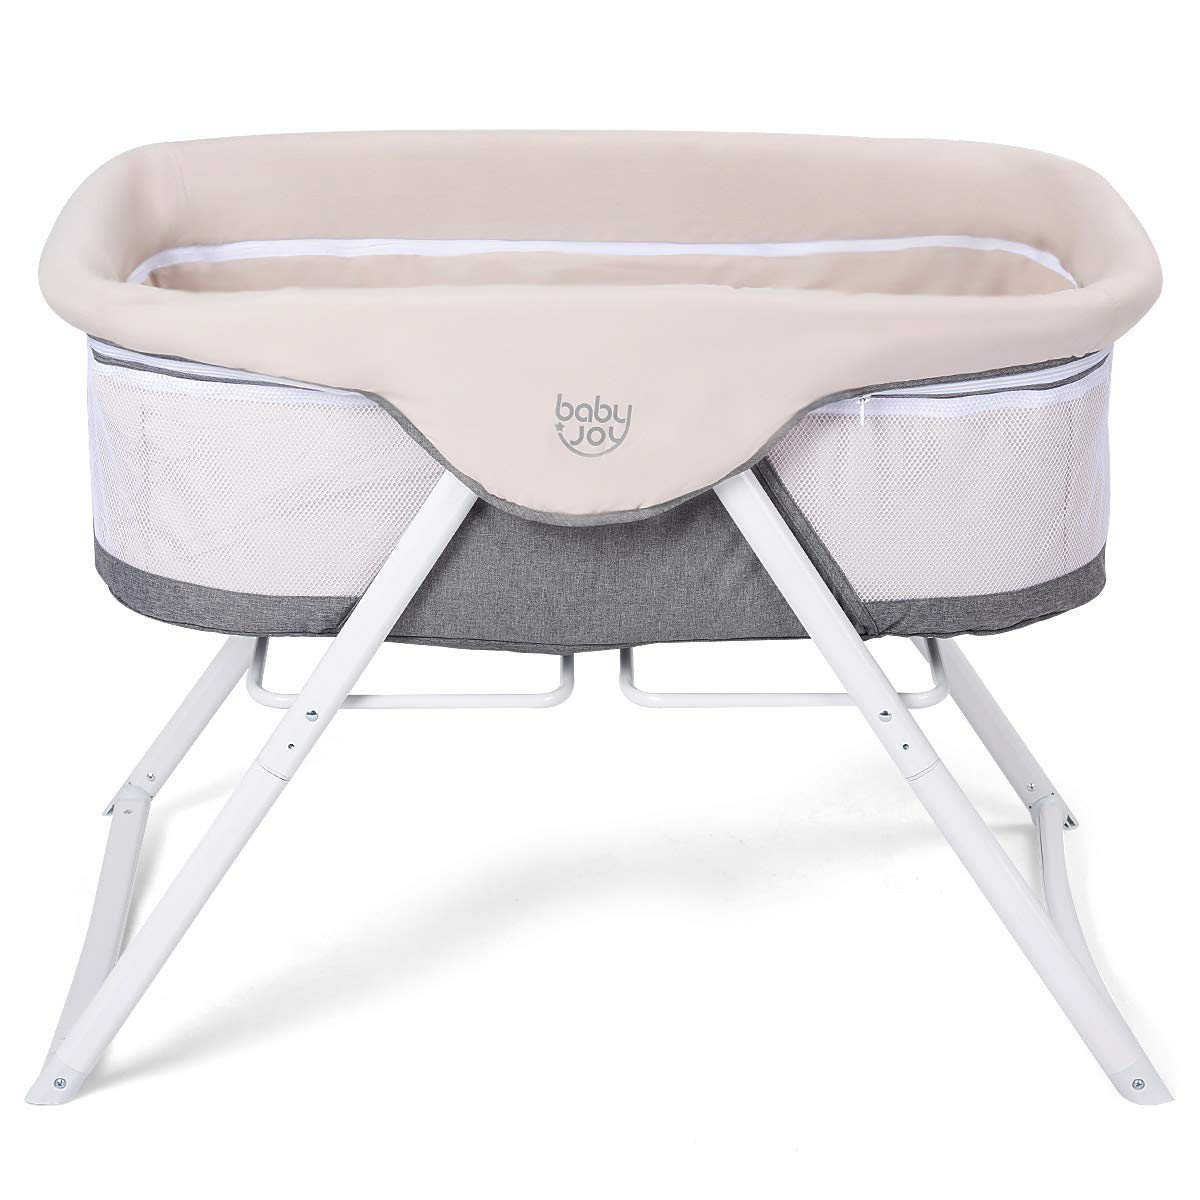 BABY JOY Rocking Bassinet, 2 in 1 Lightweight Travel Cradle w/Detachable & Washable Mattress, Zippered Breathable Mesh Side, Oxford Carry Bag Included, Portable Crib for Newborn Baby (Beige + Gray)